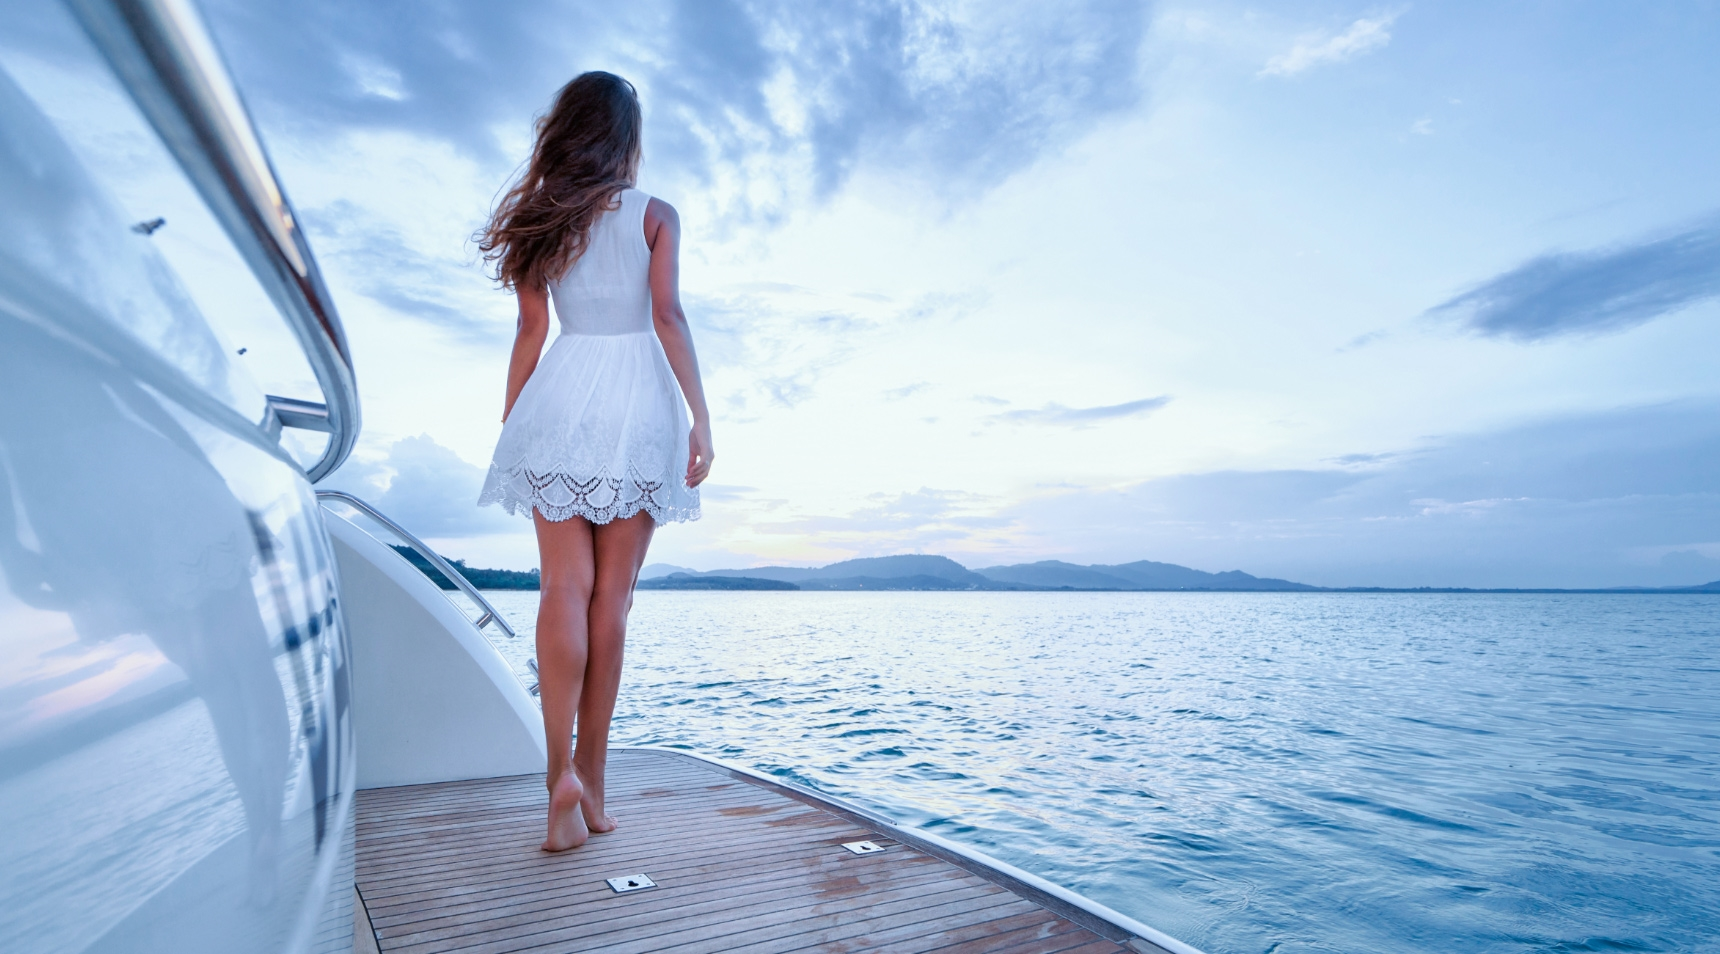 Get the most out of your yachting experience